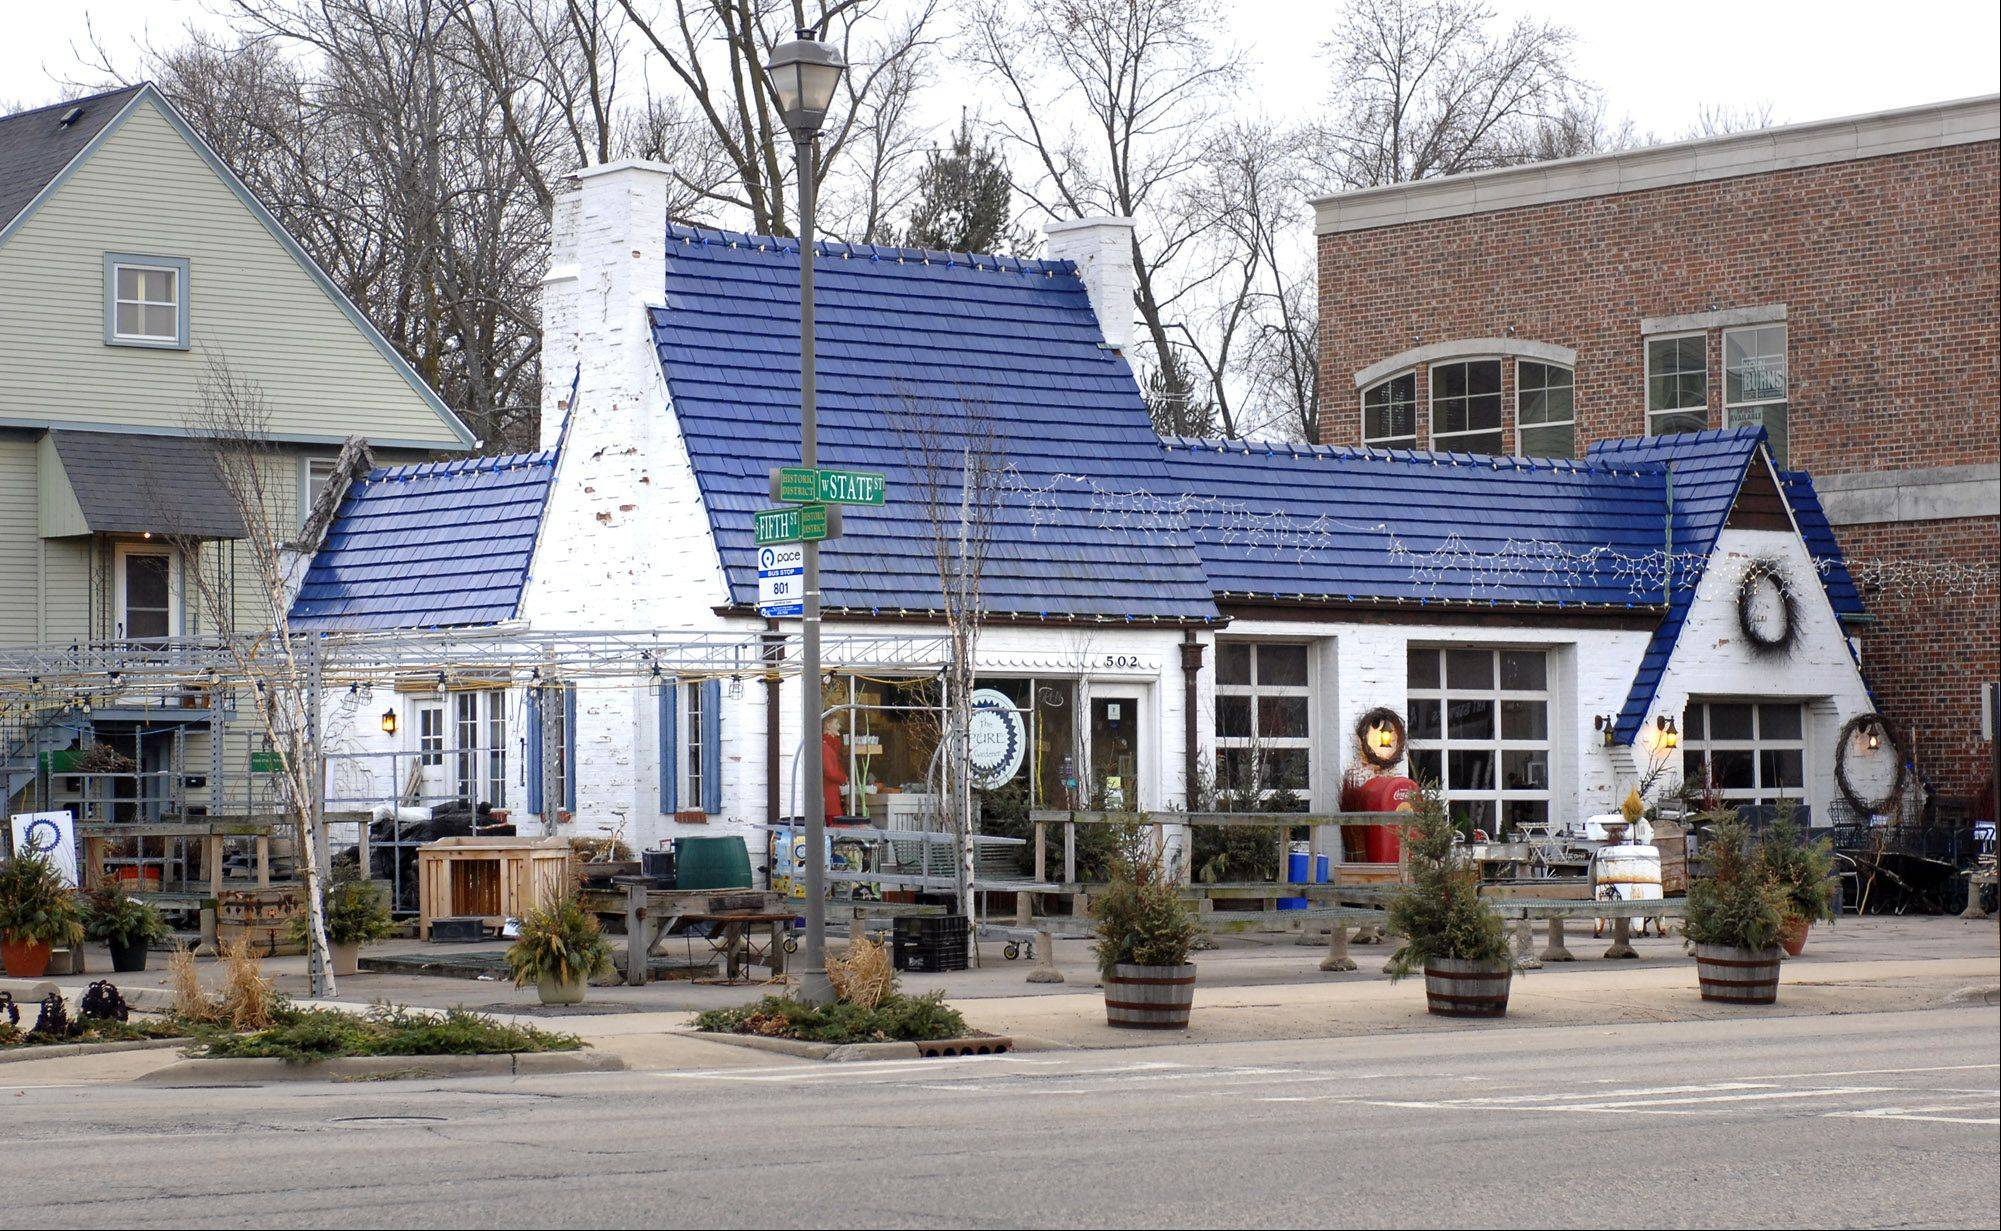 Before its renovation into a drive-up bank, this is how the old Pure Oil station in Geneva looked last year when it housed a gardening shop. Preservation Partners of the Fox Valley has won an award for advocating for the preservation of the his